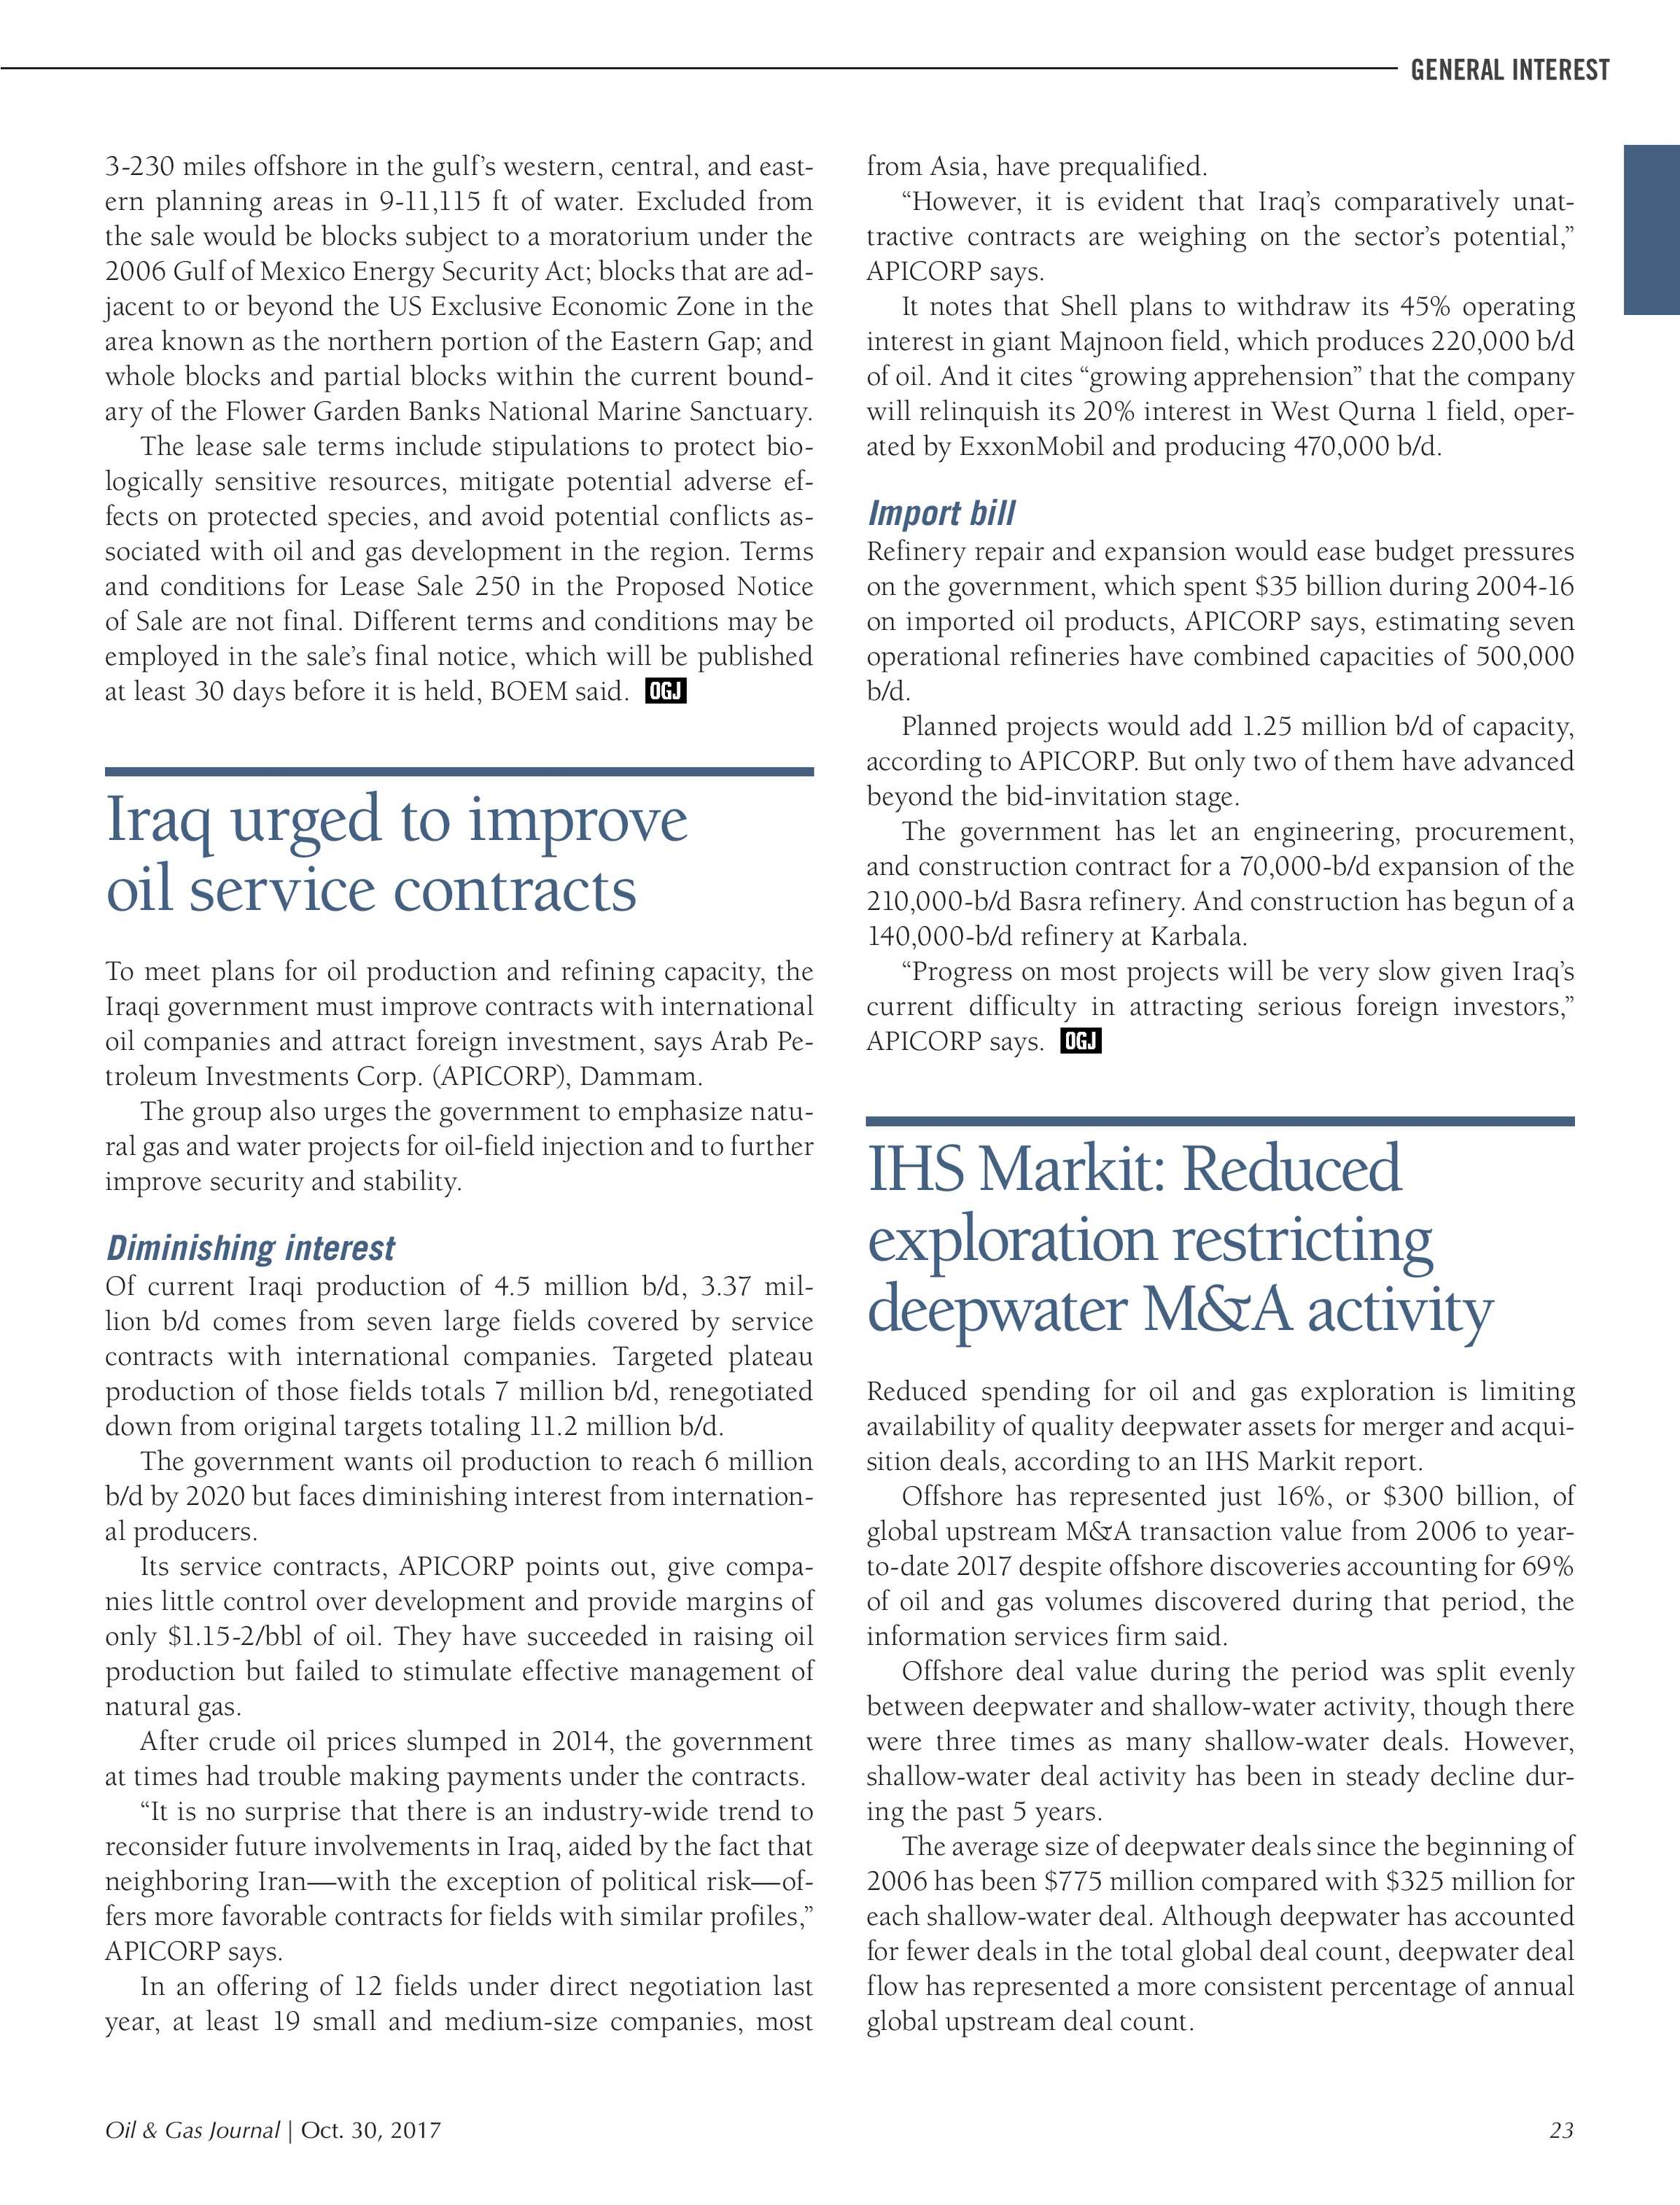 Oil & Gas Journal - October 30, 2017 - page 23